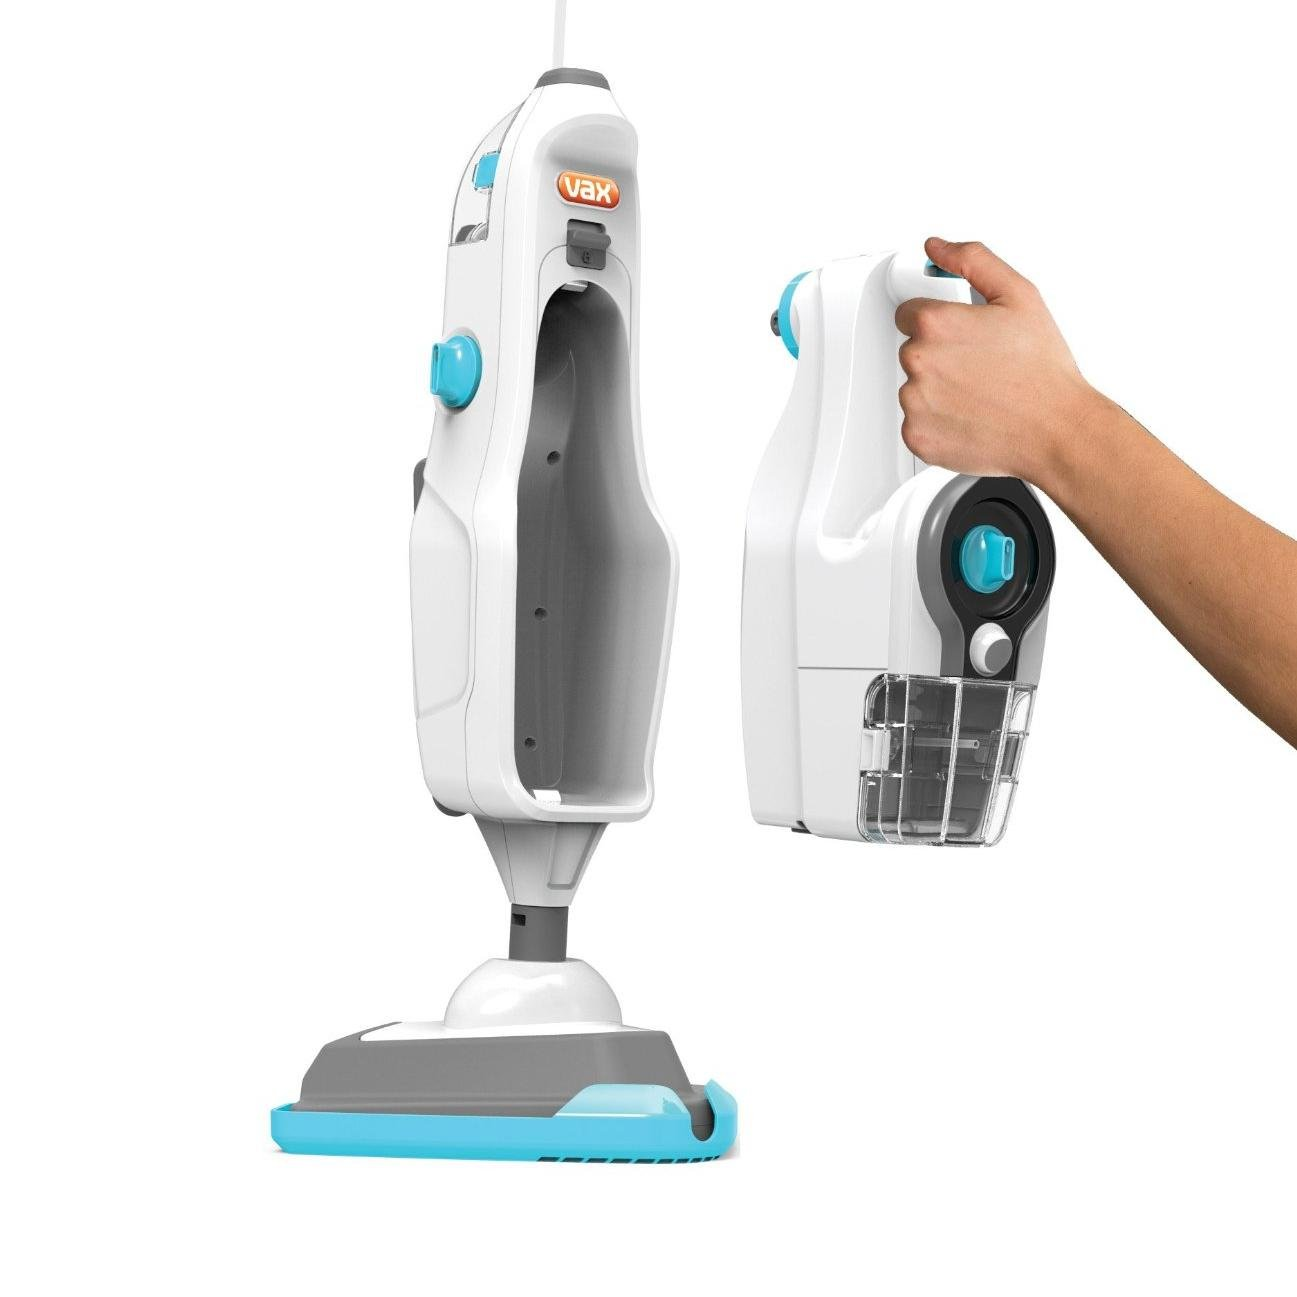 Best Steam Mop UK On Twitter Compare Karcher Steam Cleaners UK - Best steam cleaners for home use